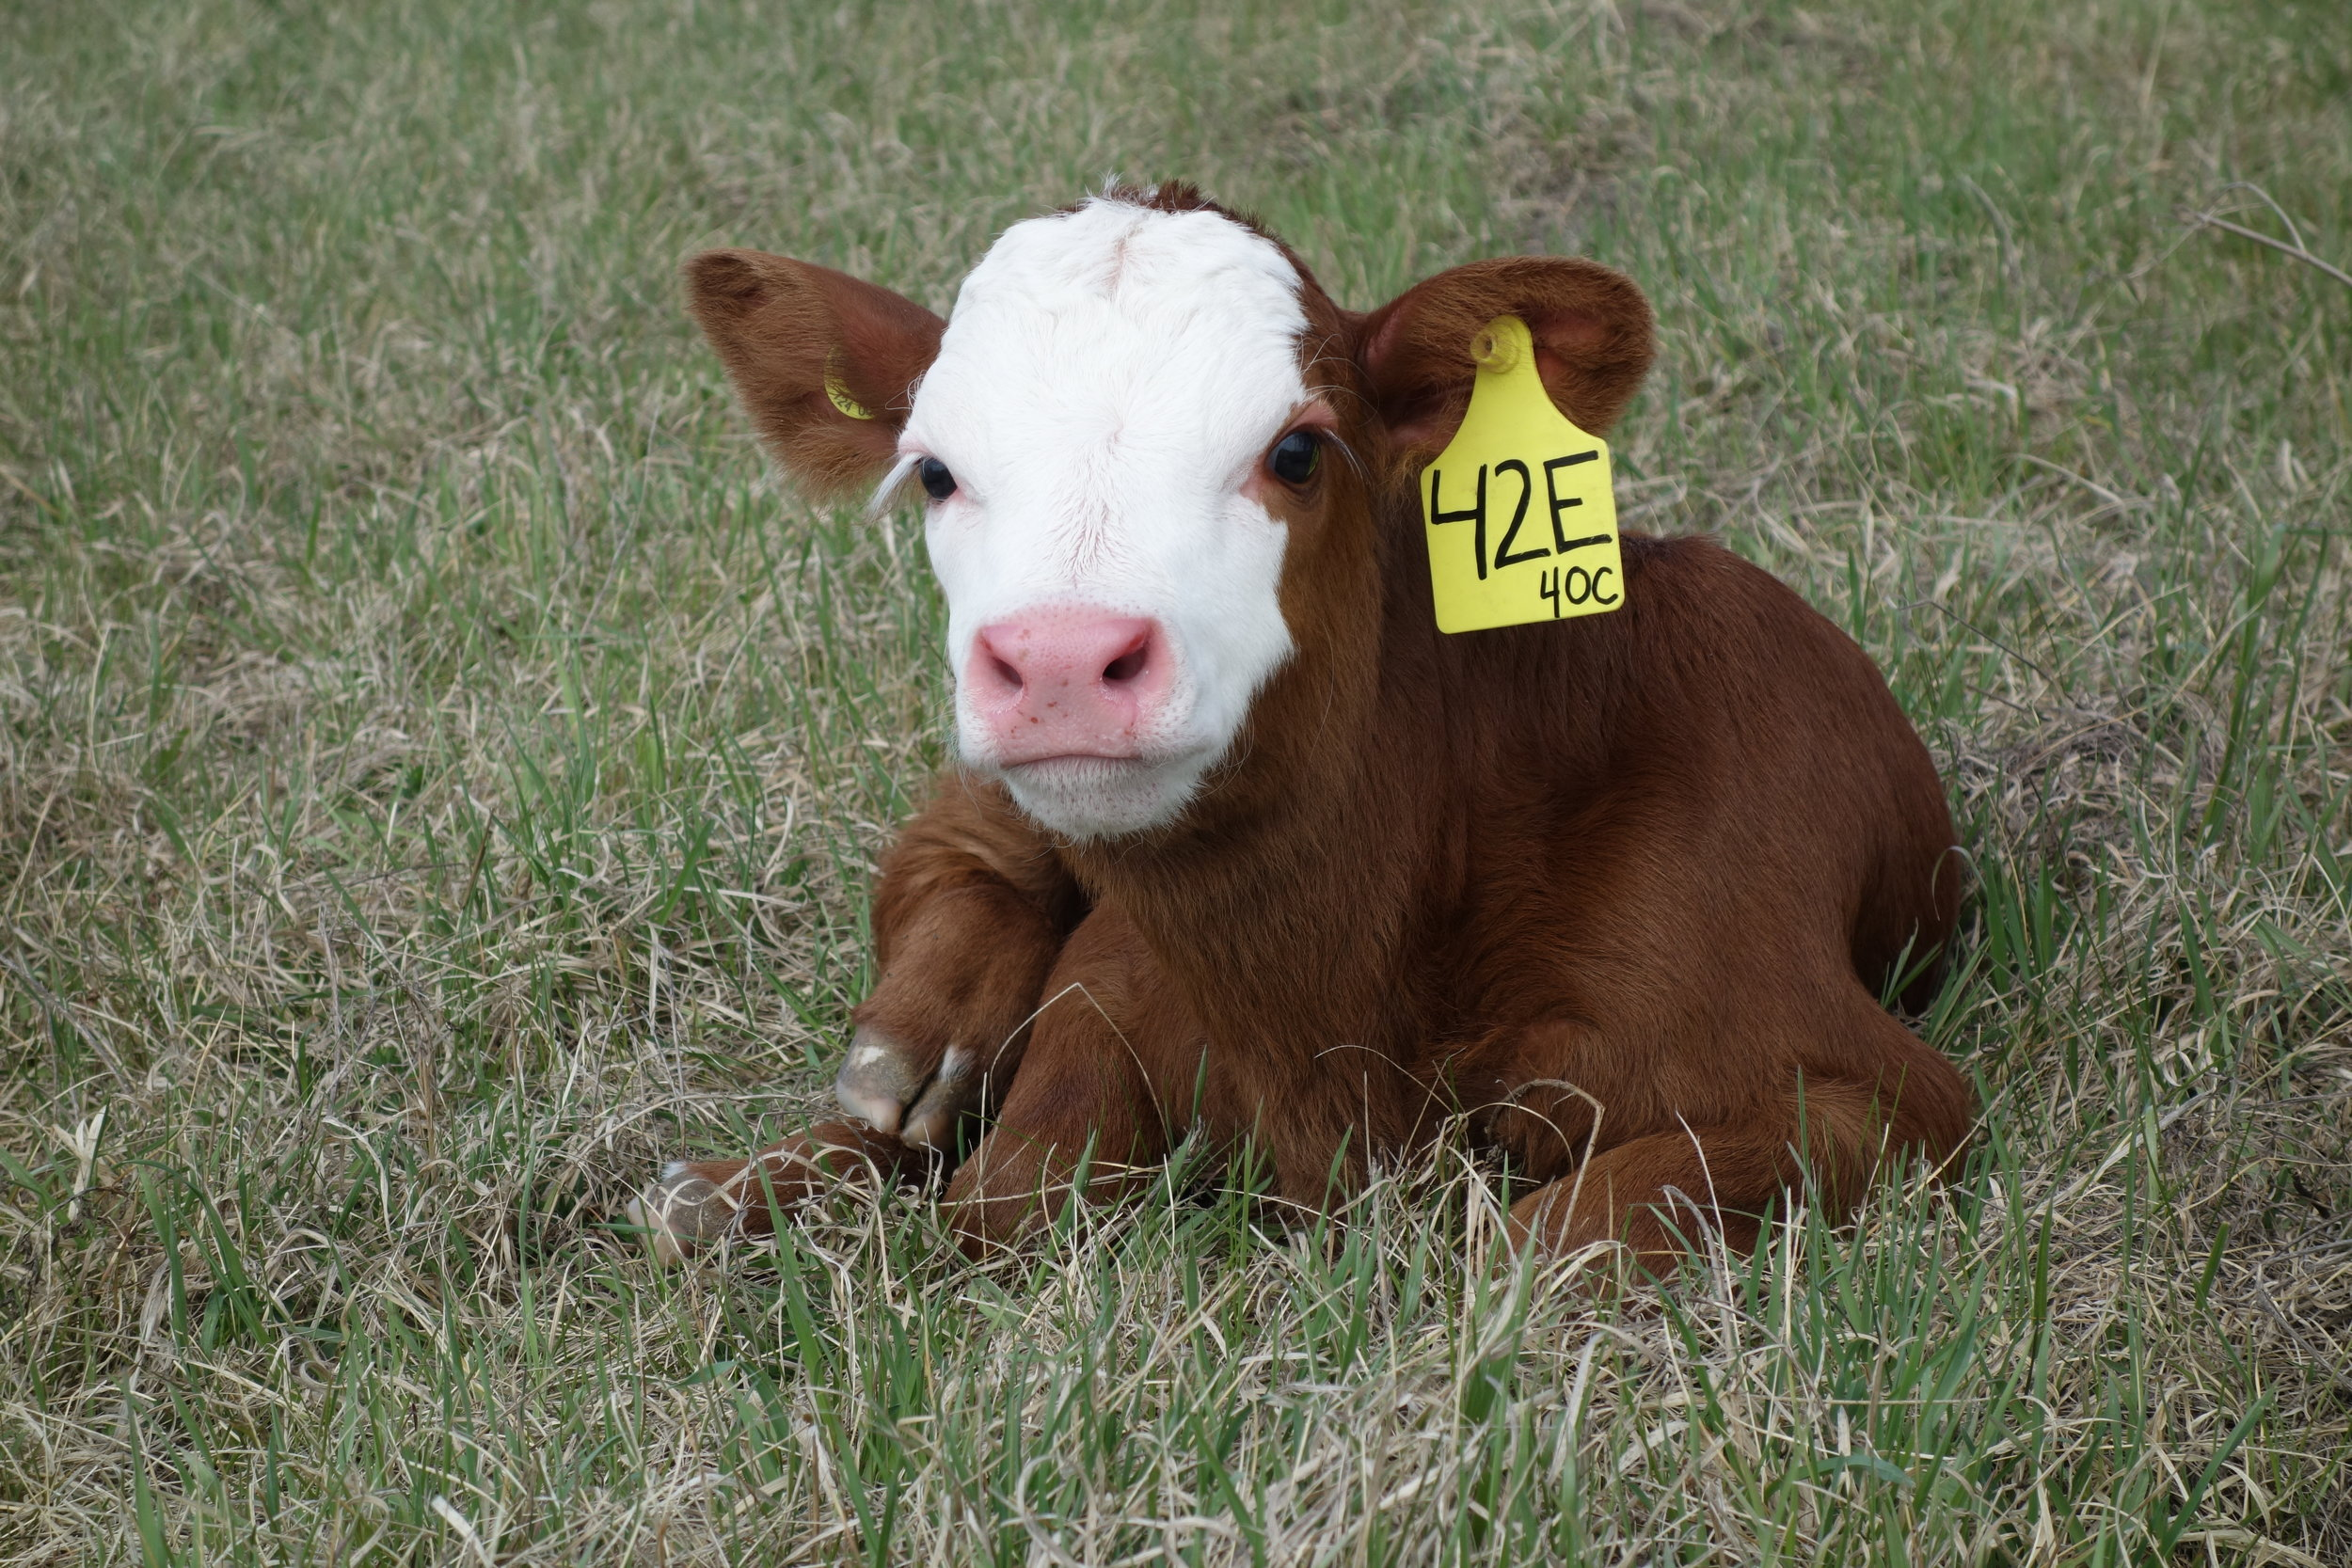 Two day old calf at the Johnson Farm 2017